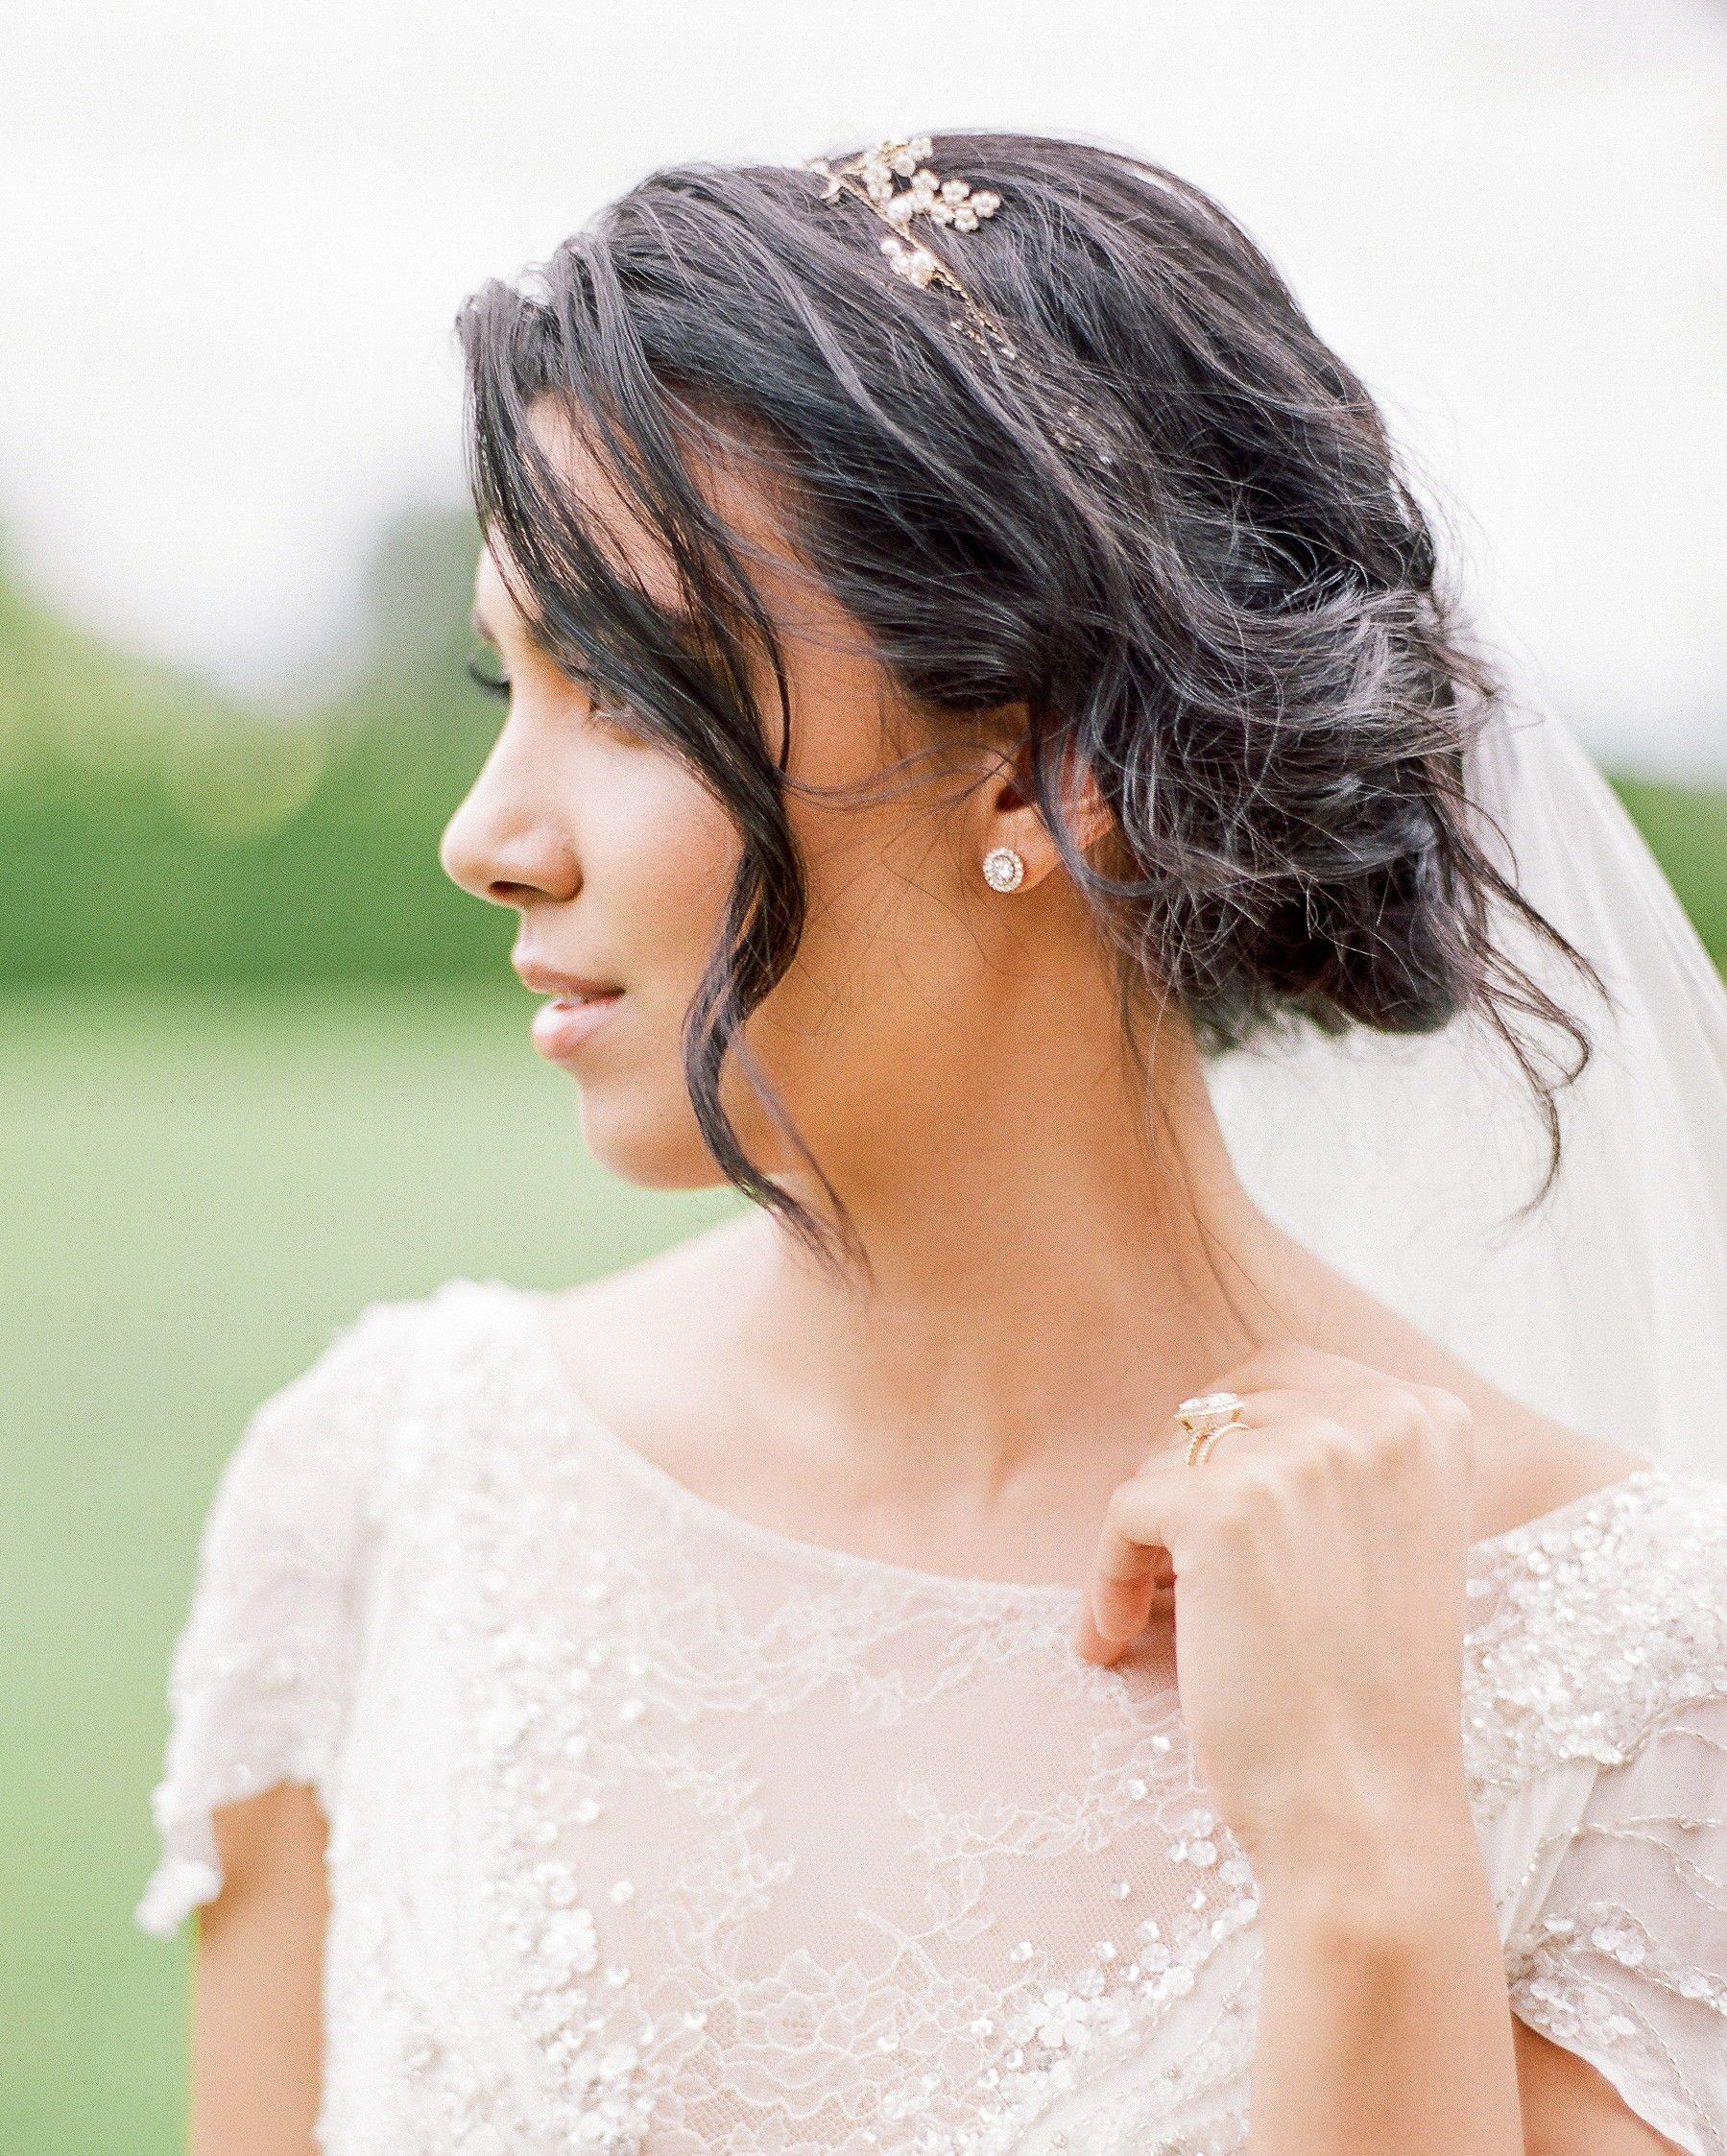 Amazing Wedding Hairstyles: 20 Crowns That Will Make Any Bride Feel Like Royalty